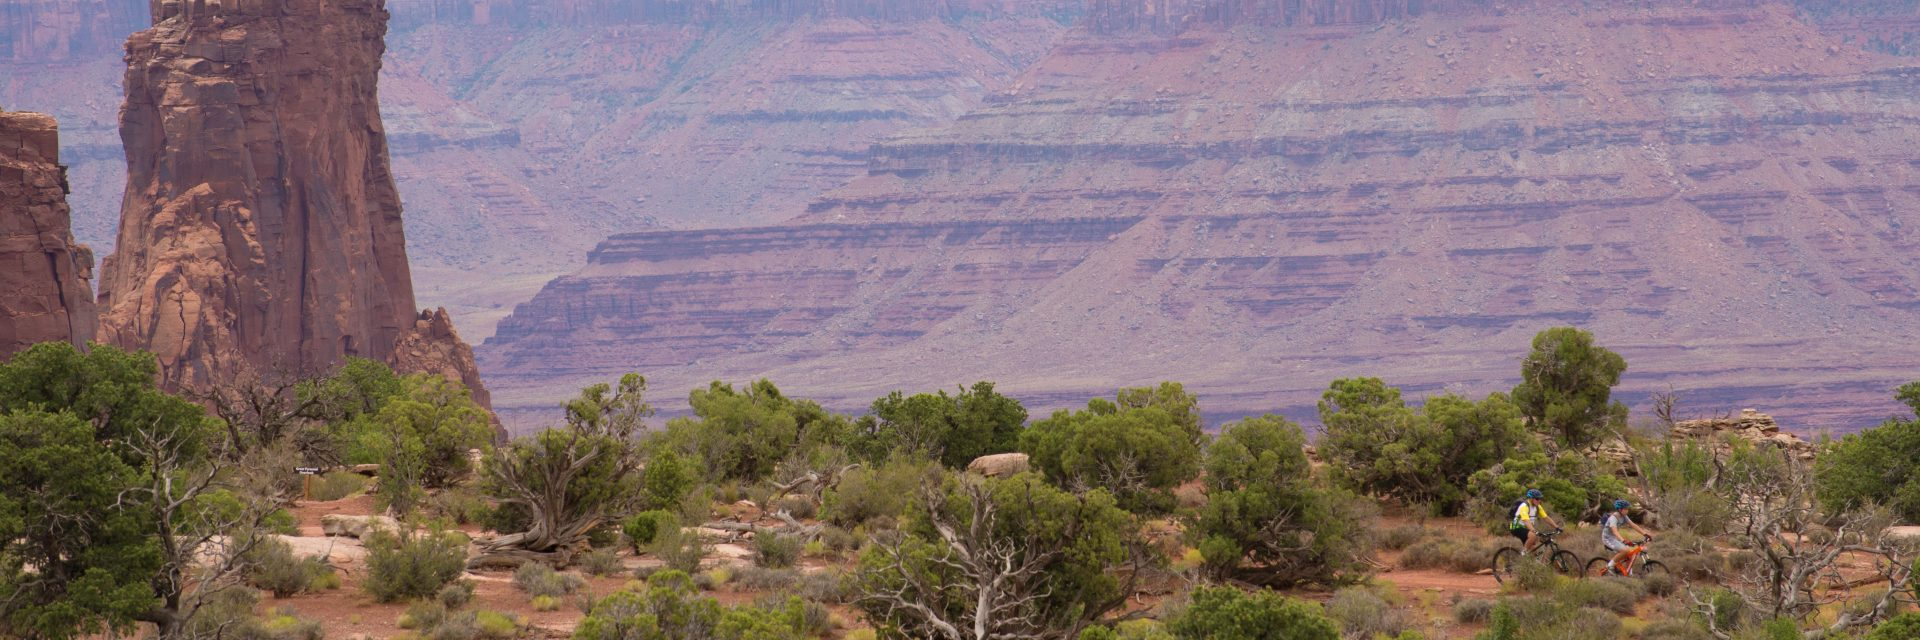 Dead Horse Point State Park - Intredpid Trail, below the switchback